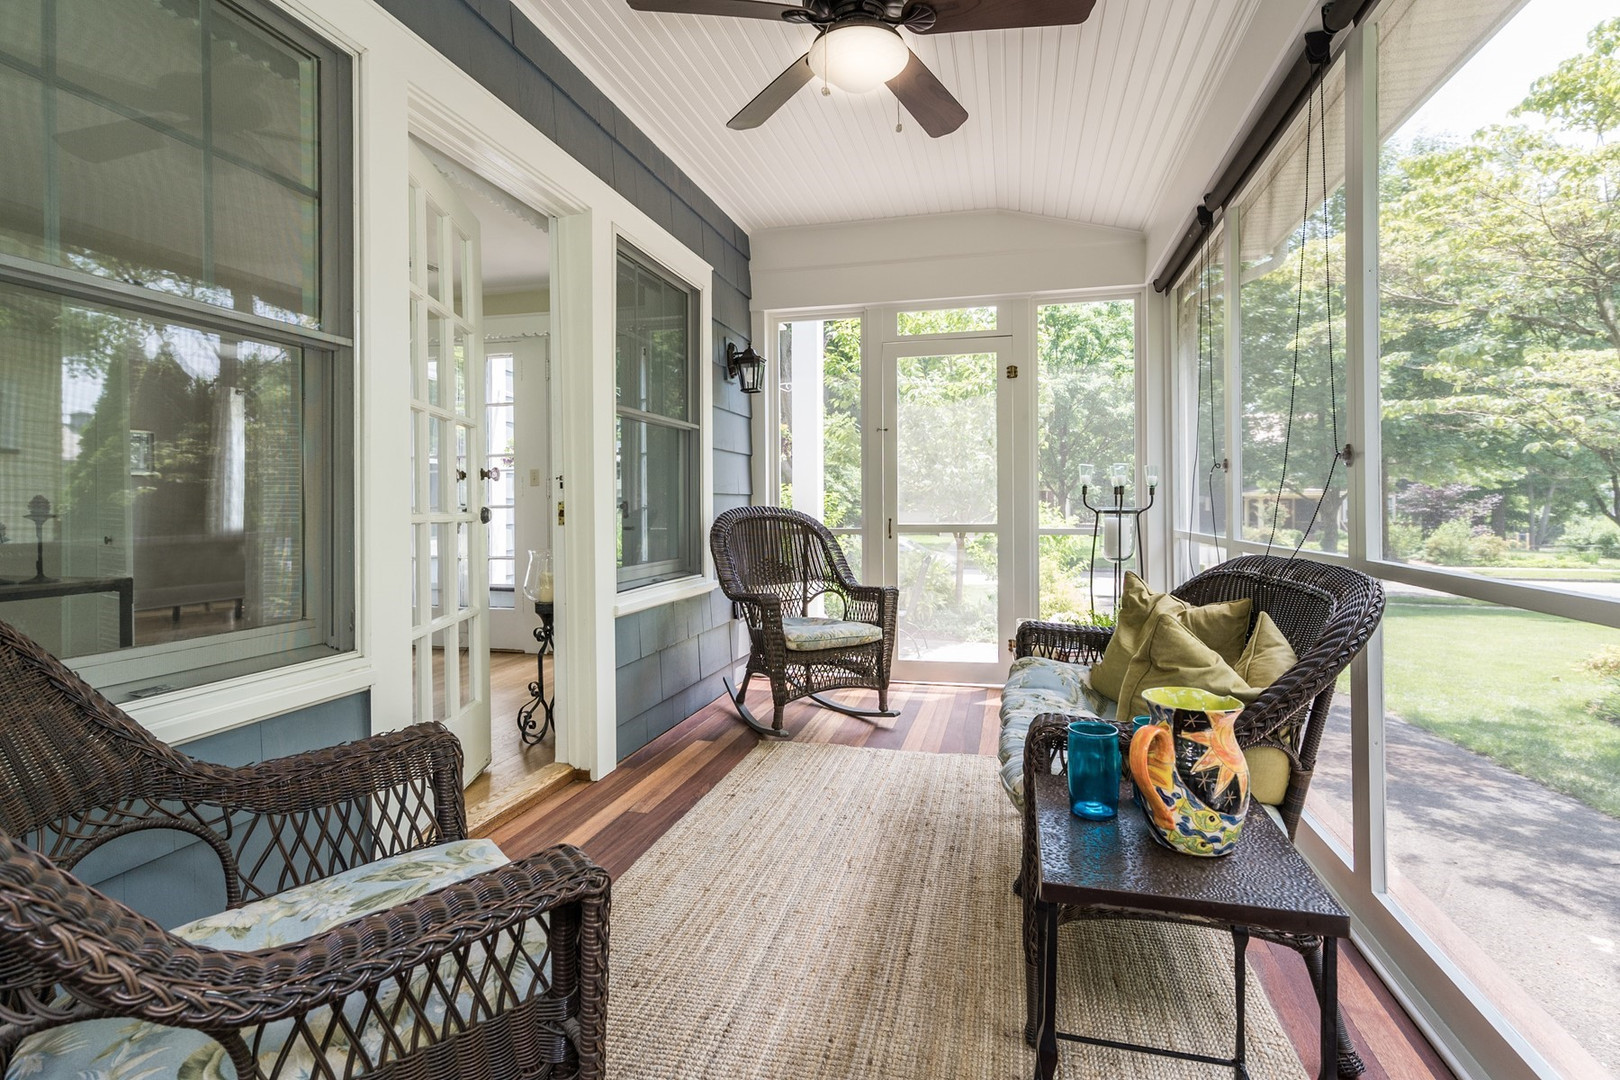 008_Screened Porch.jpg